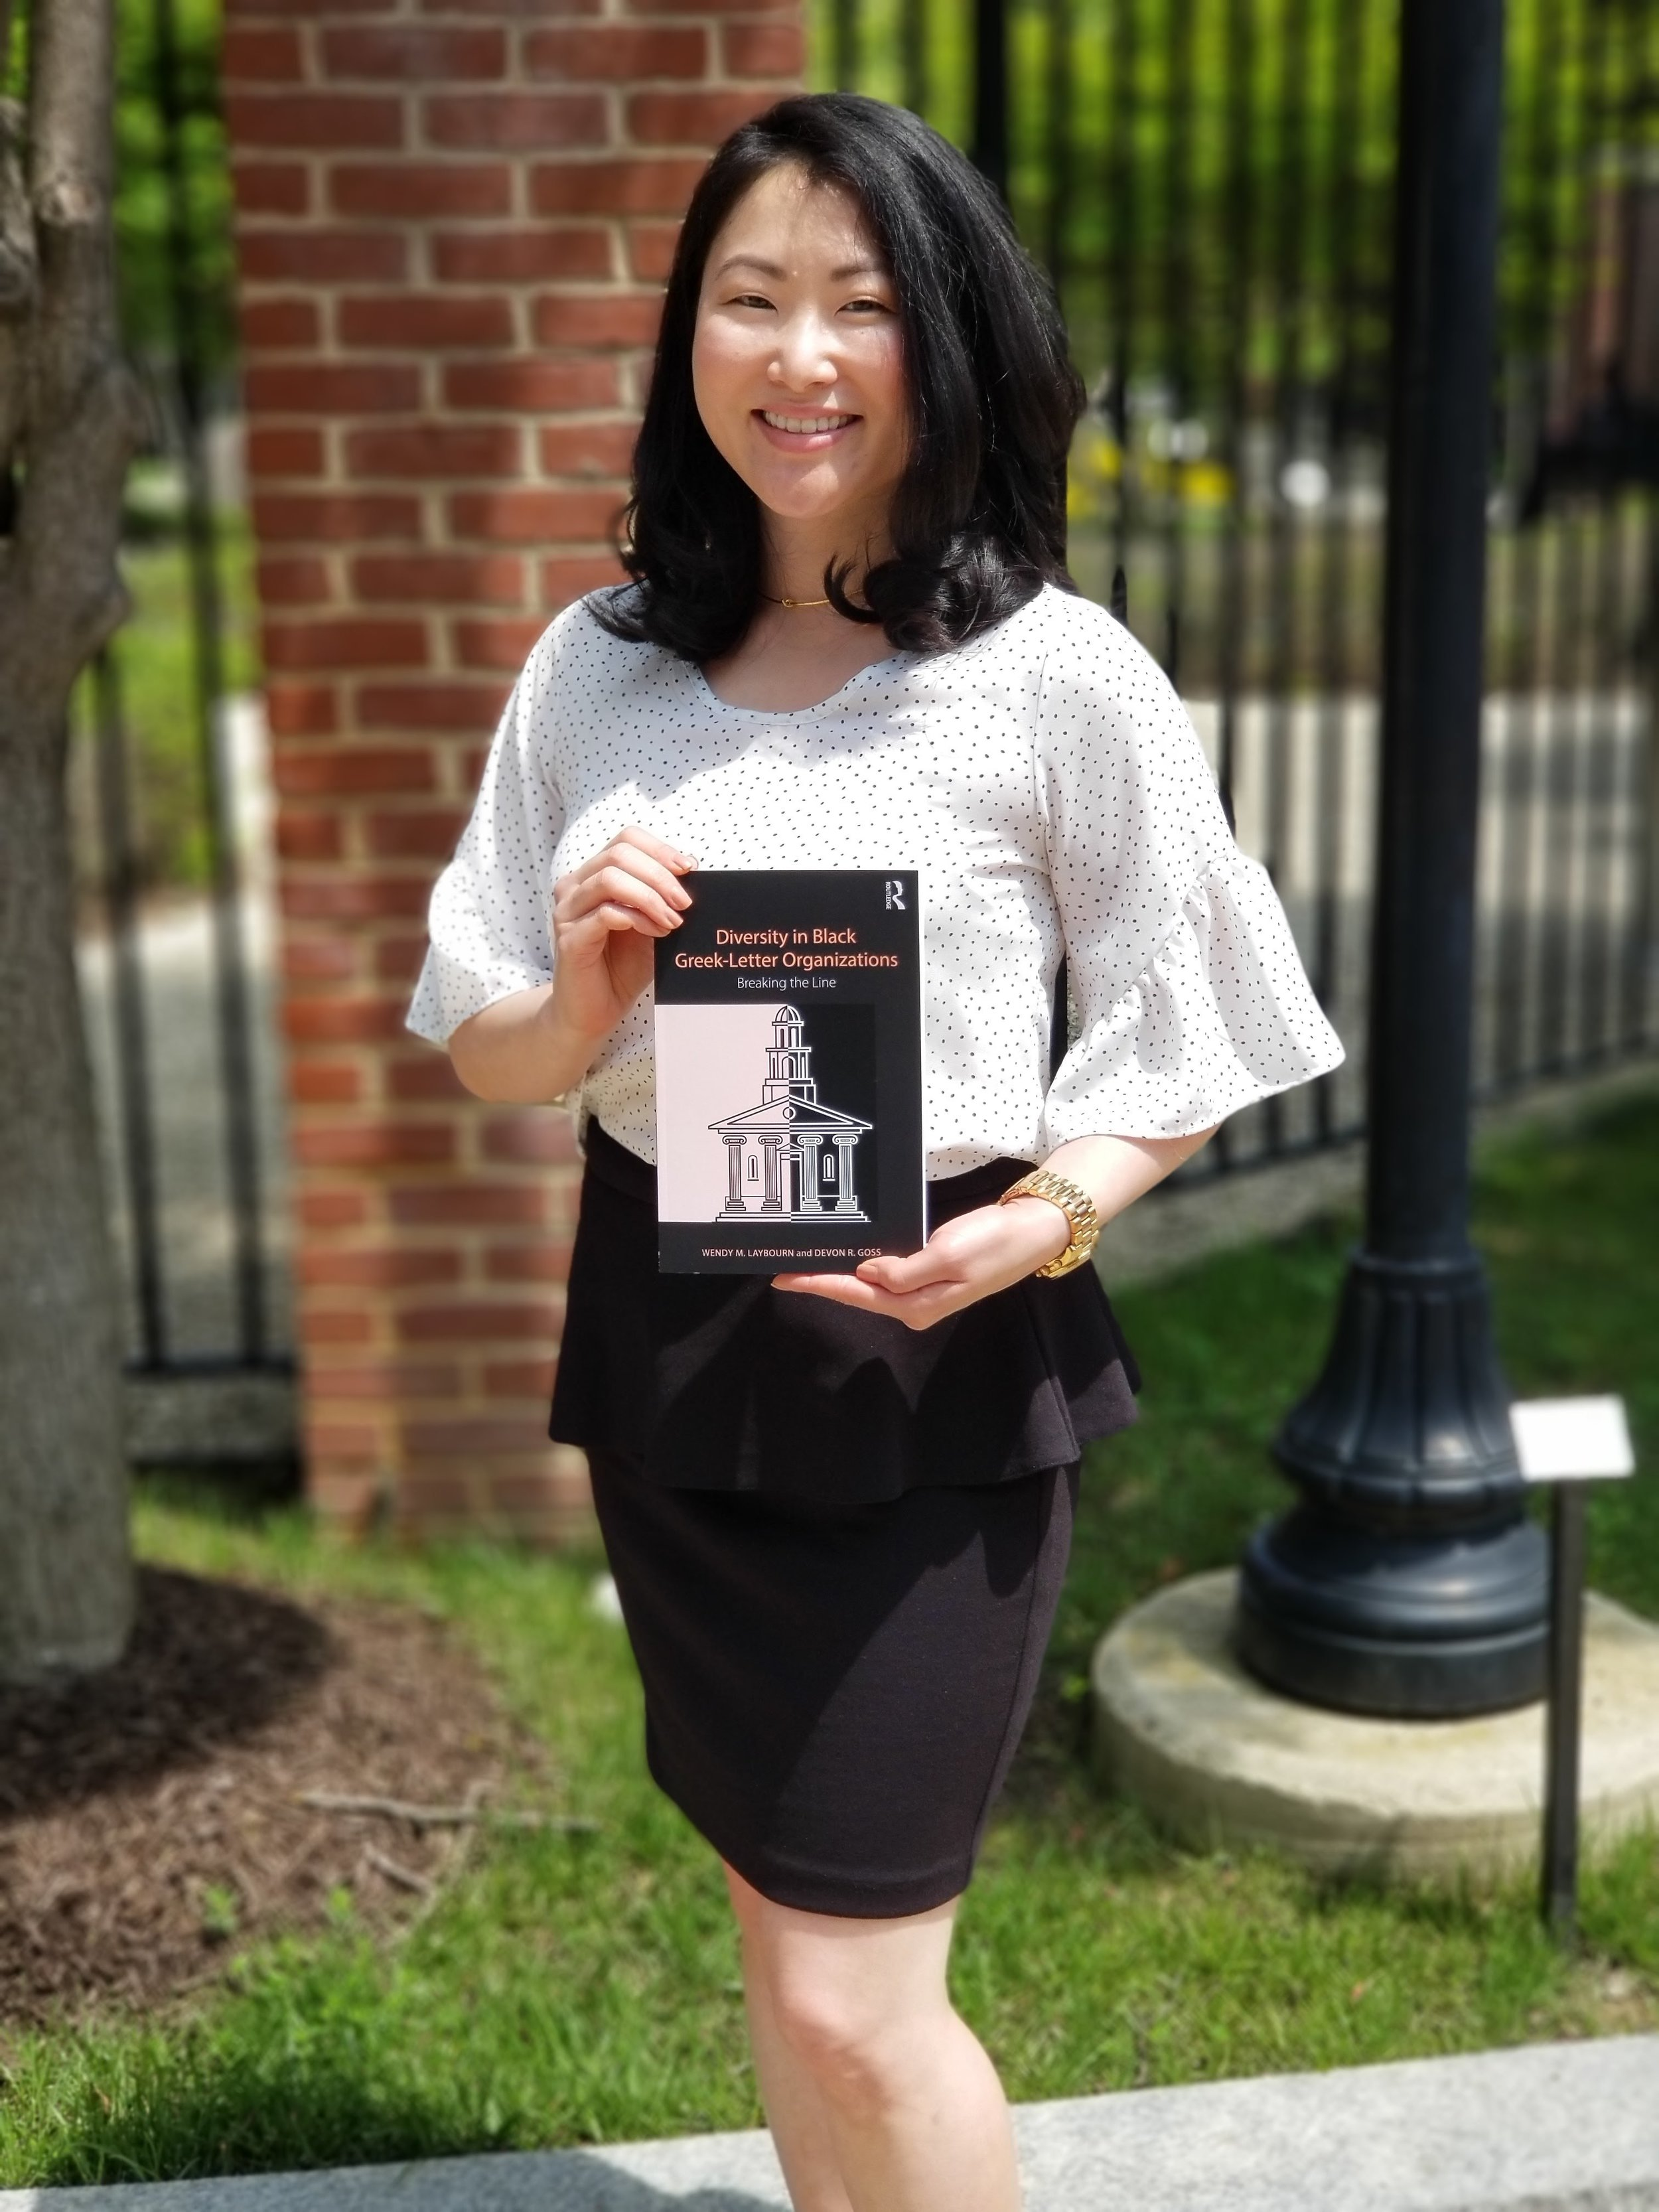 Andrea Fenise Memphis Fashion Blogger features Wendy Layborn for Working Woman feature